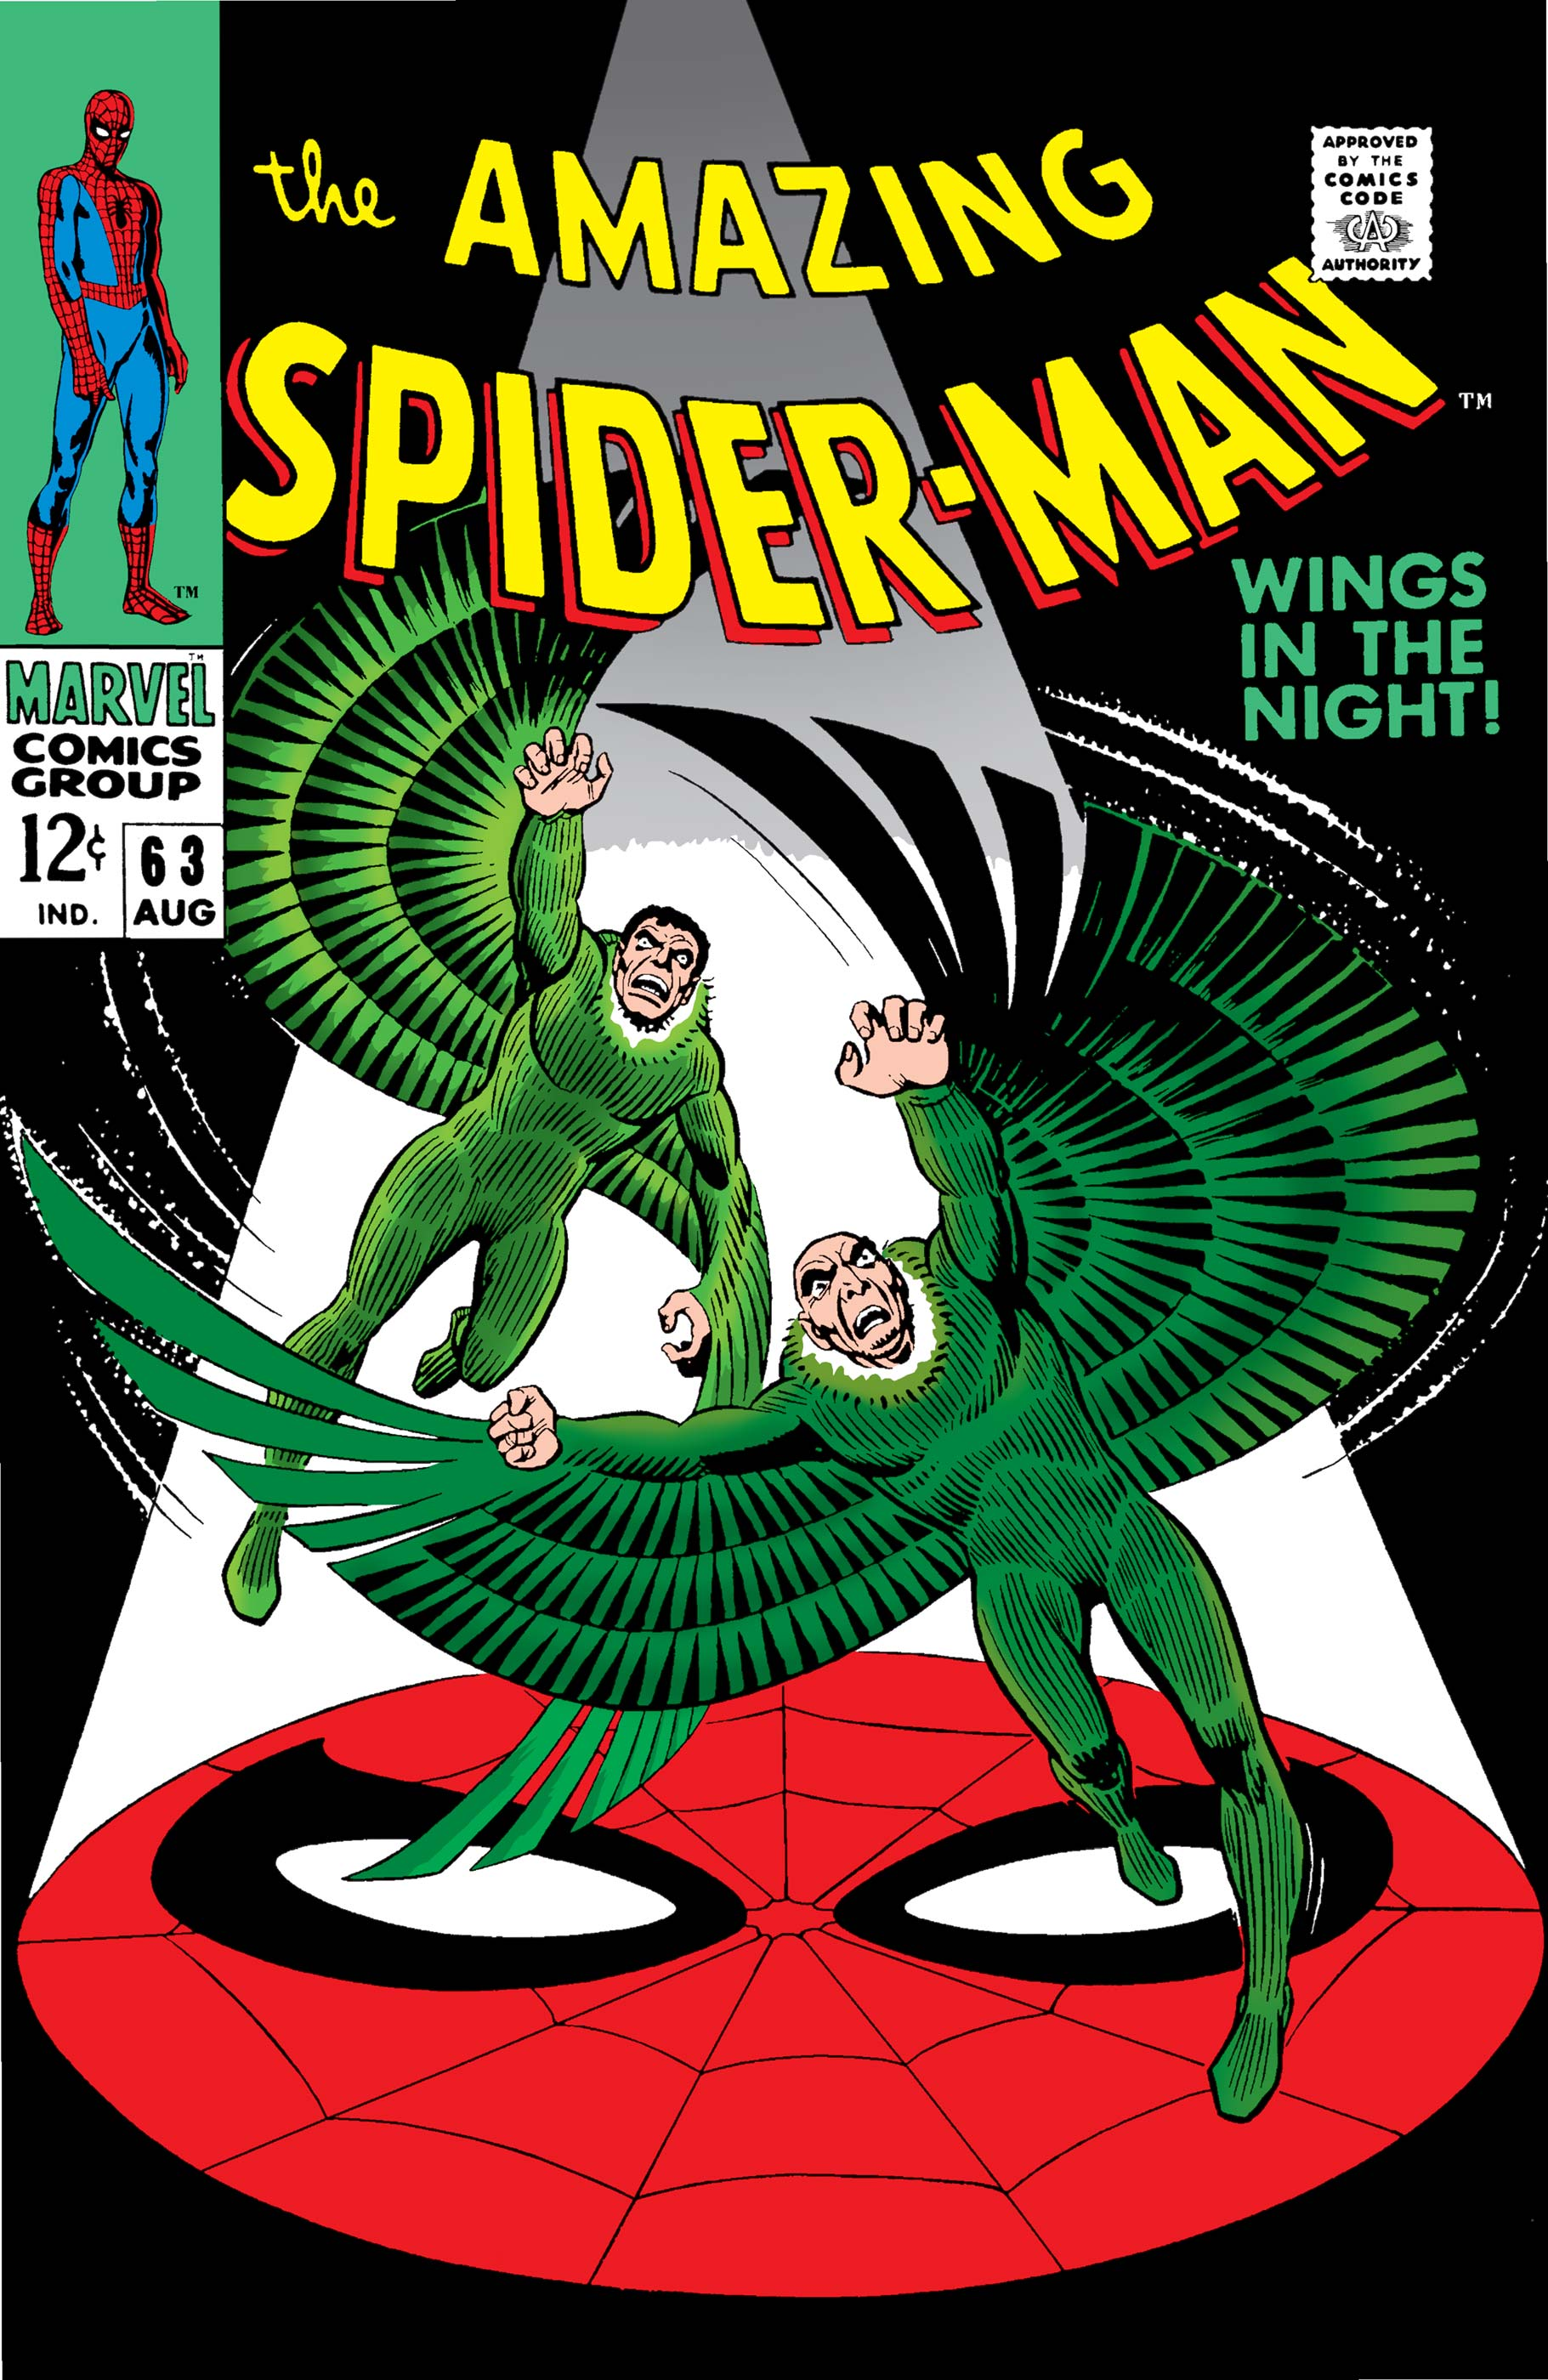 The Amazing Spider-Man (1963) #63